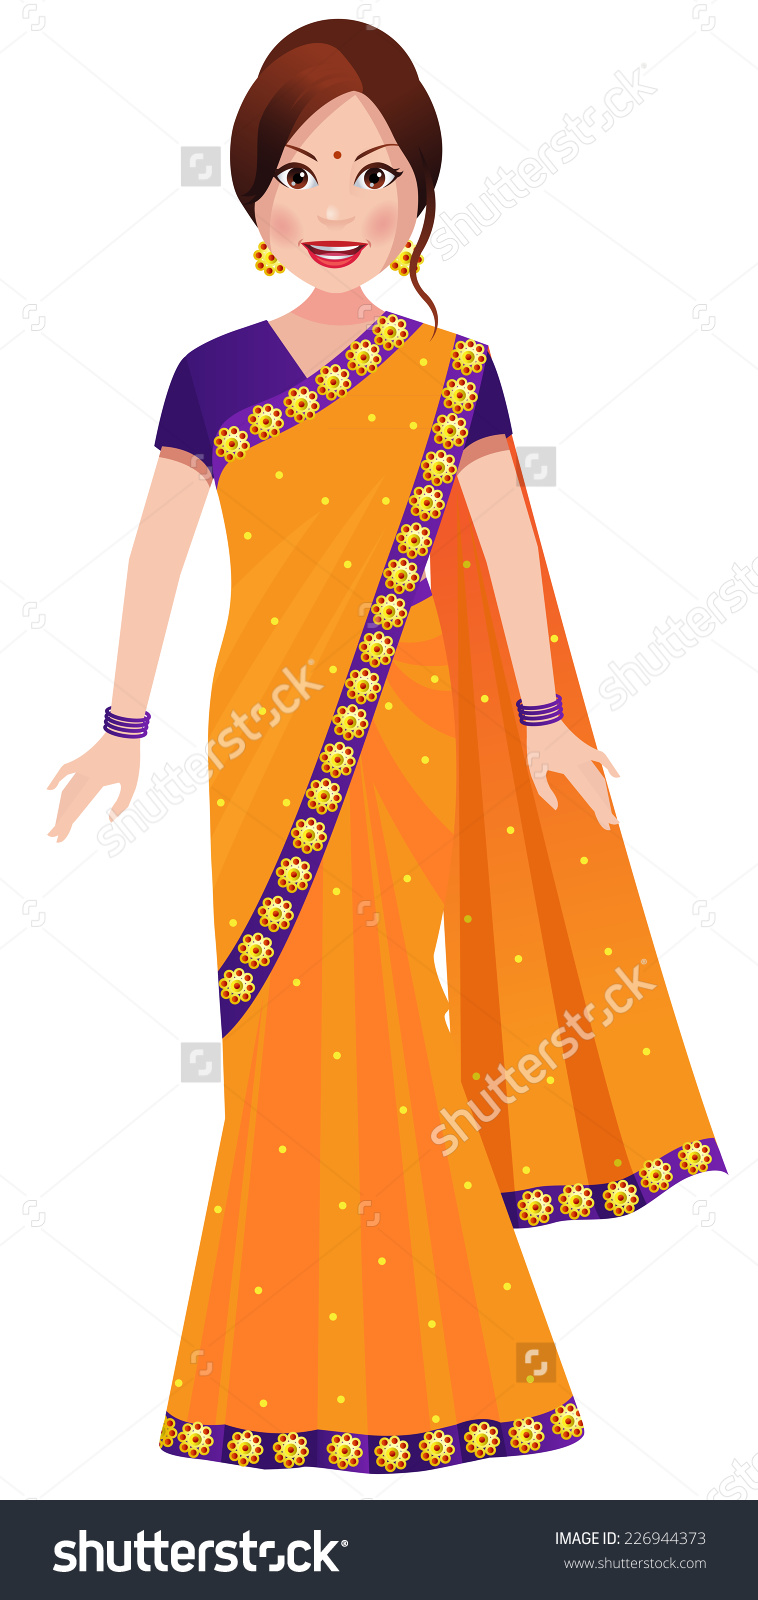 Traditional indian lady clipart vector library Traditional woman clipart - ClipartFest vector library